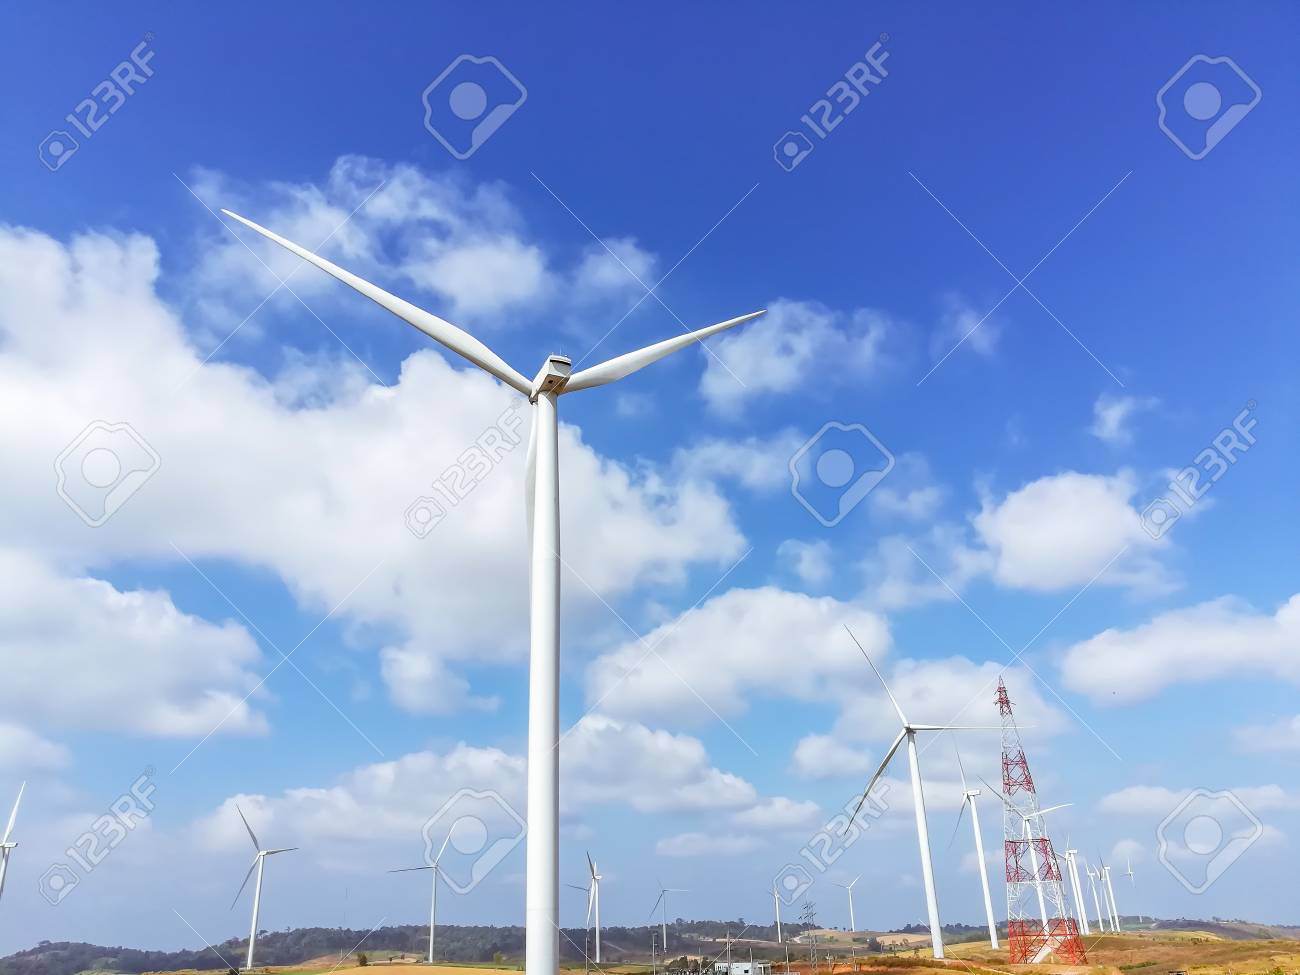 Electricity wind turbines field for generate alternative power with blue sky - 106266837